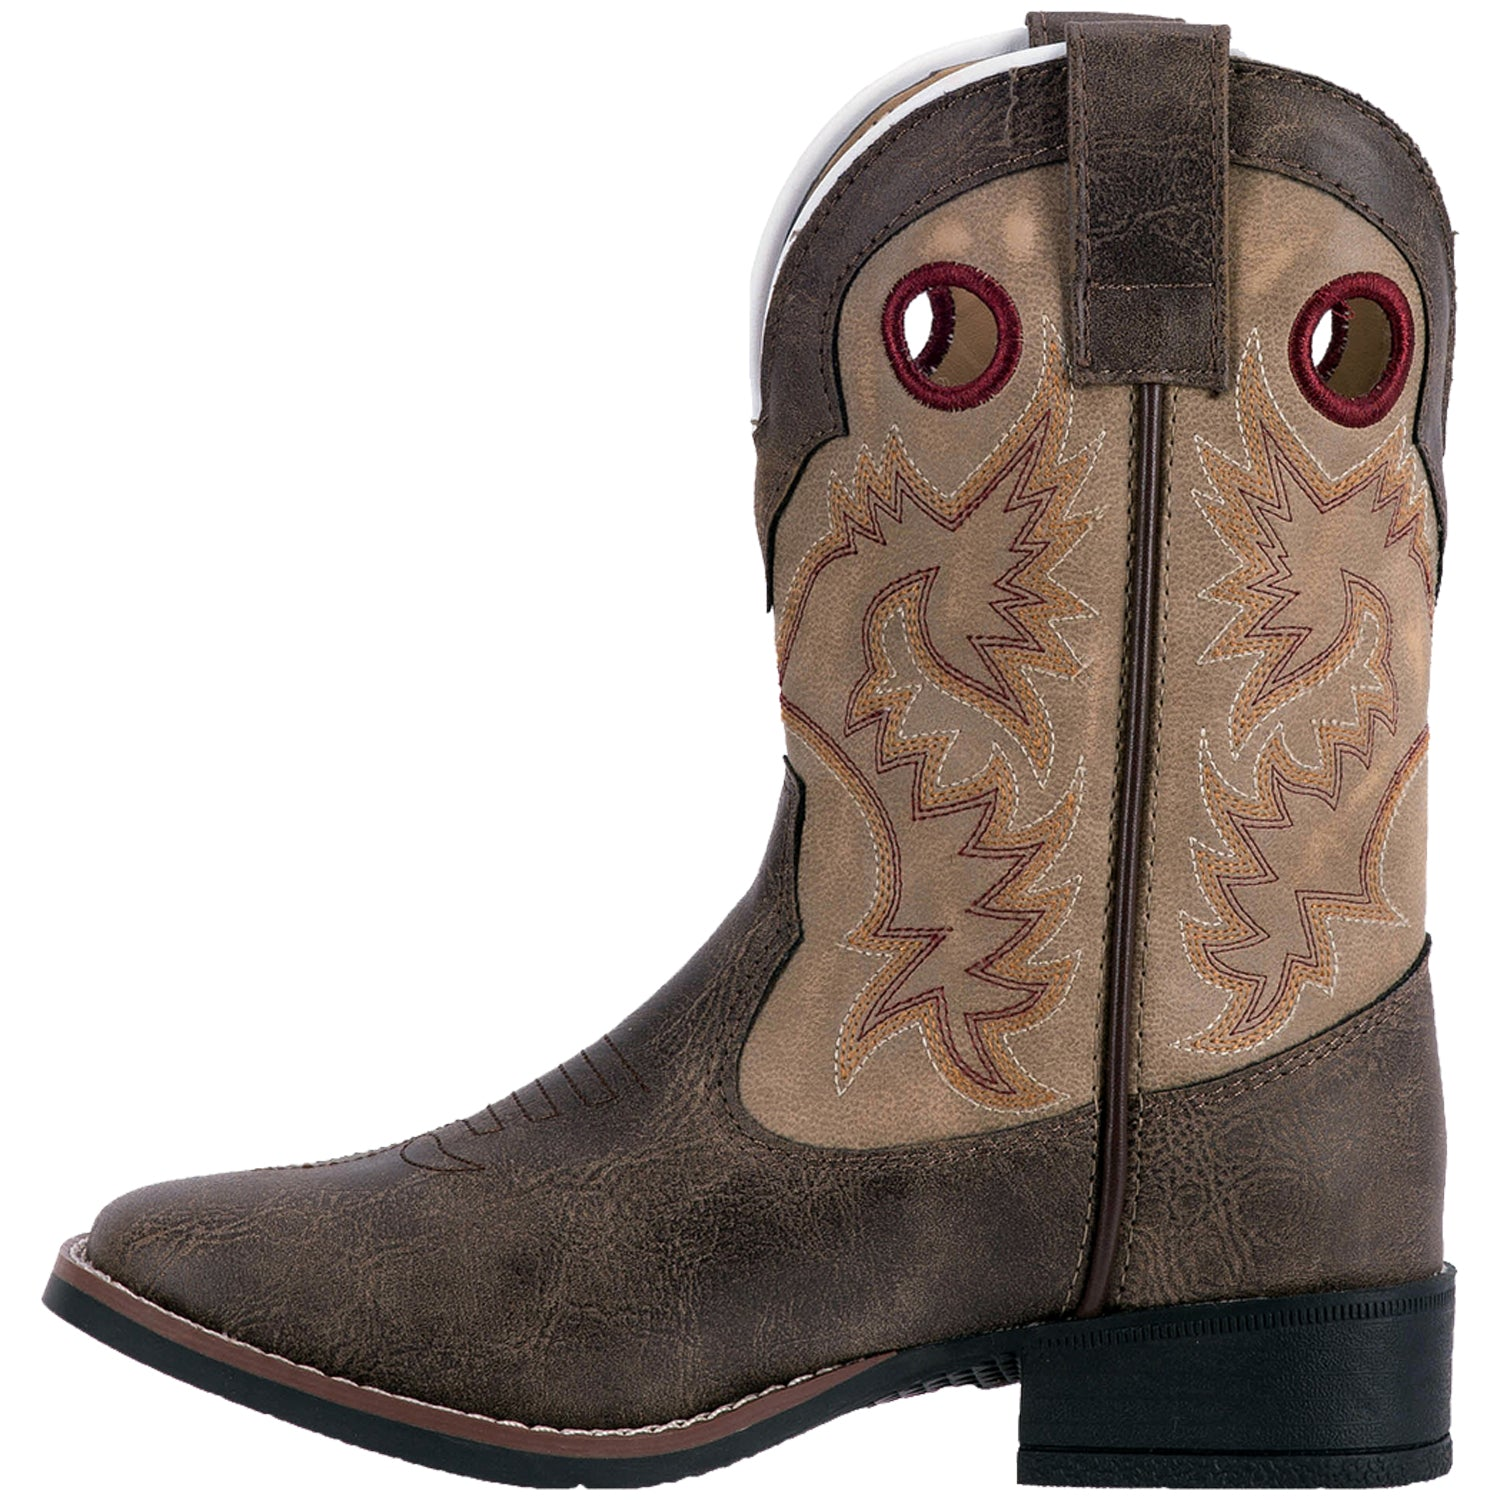 COLLARED CHILDREN'S BOOT